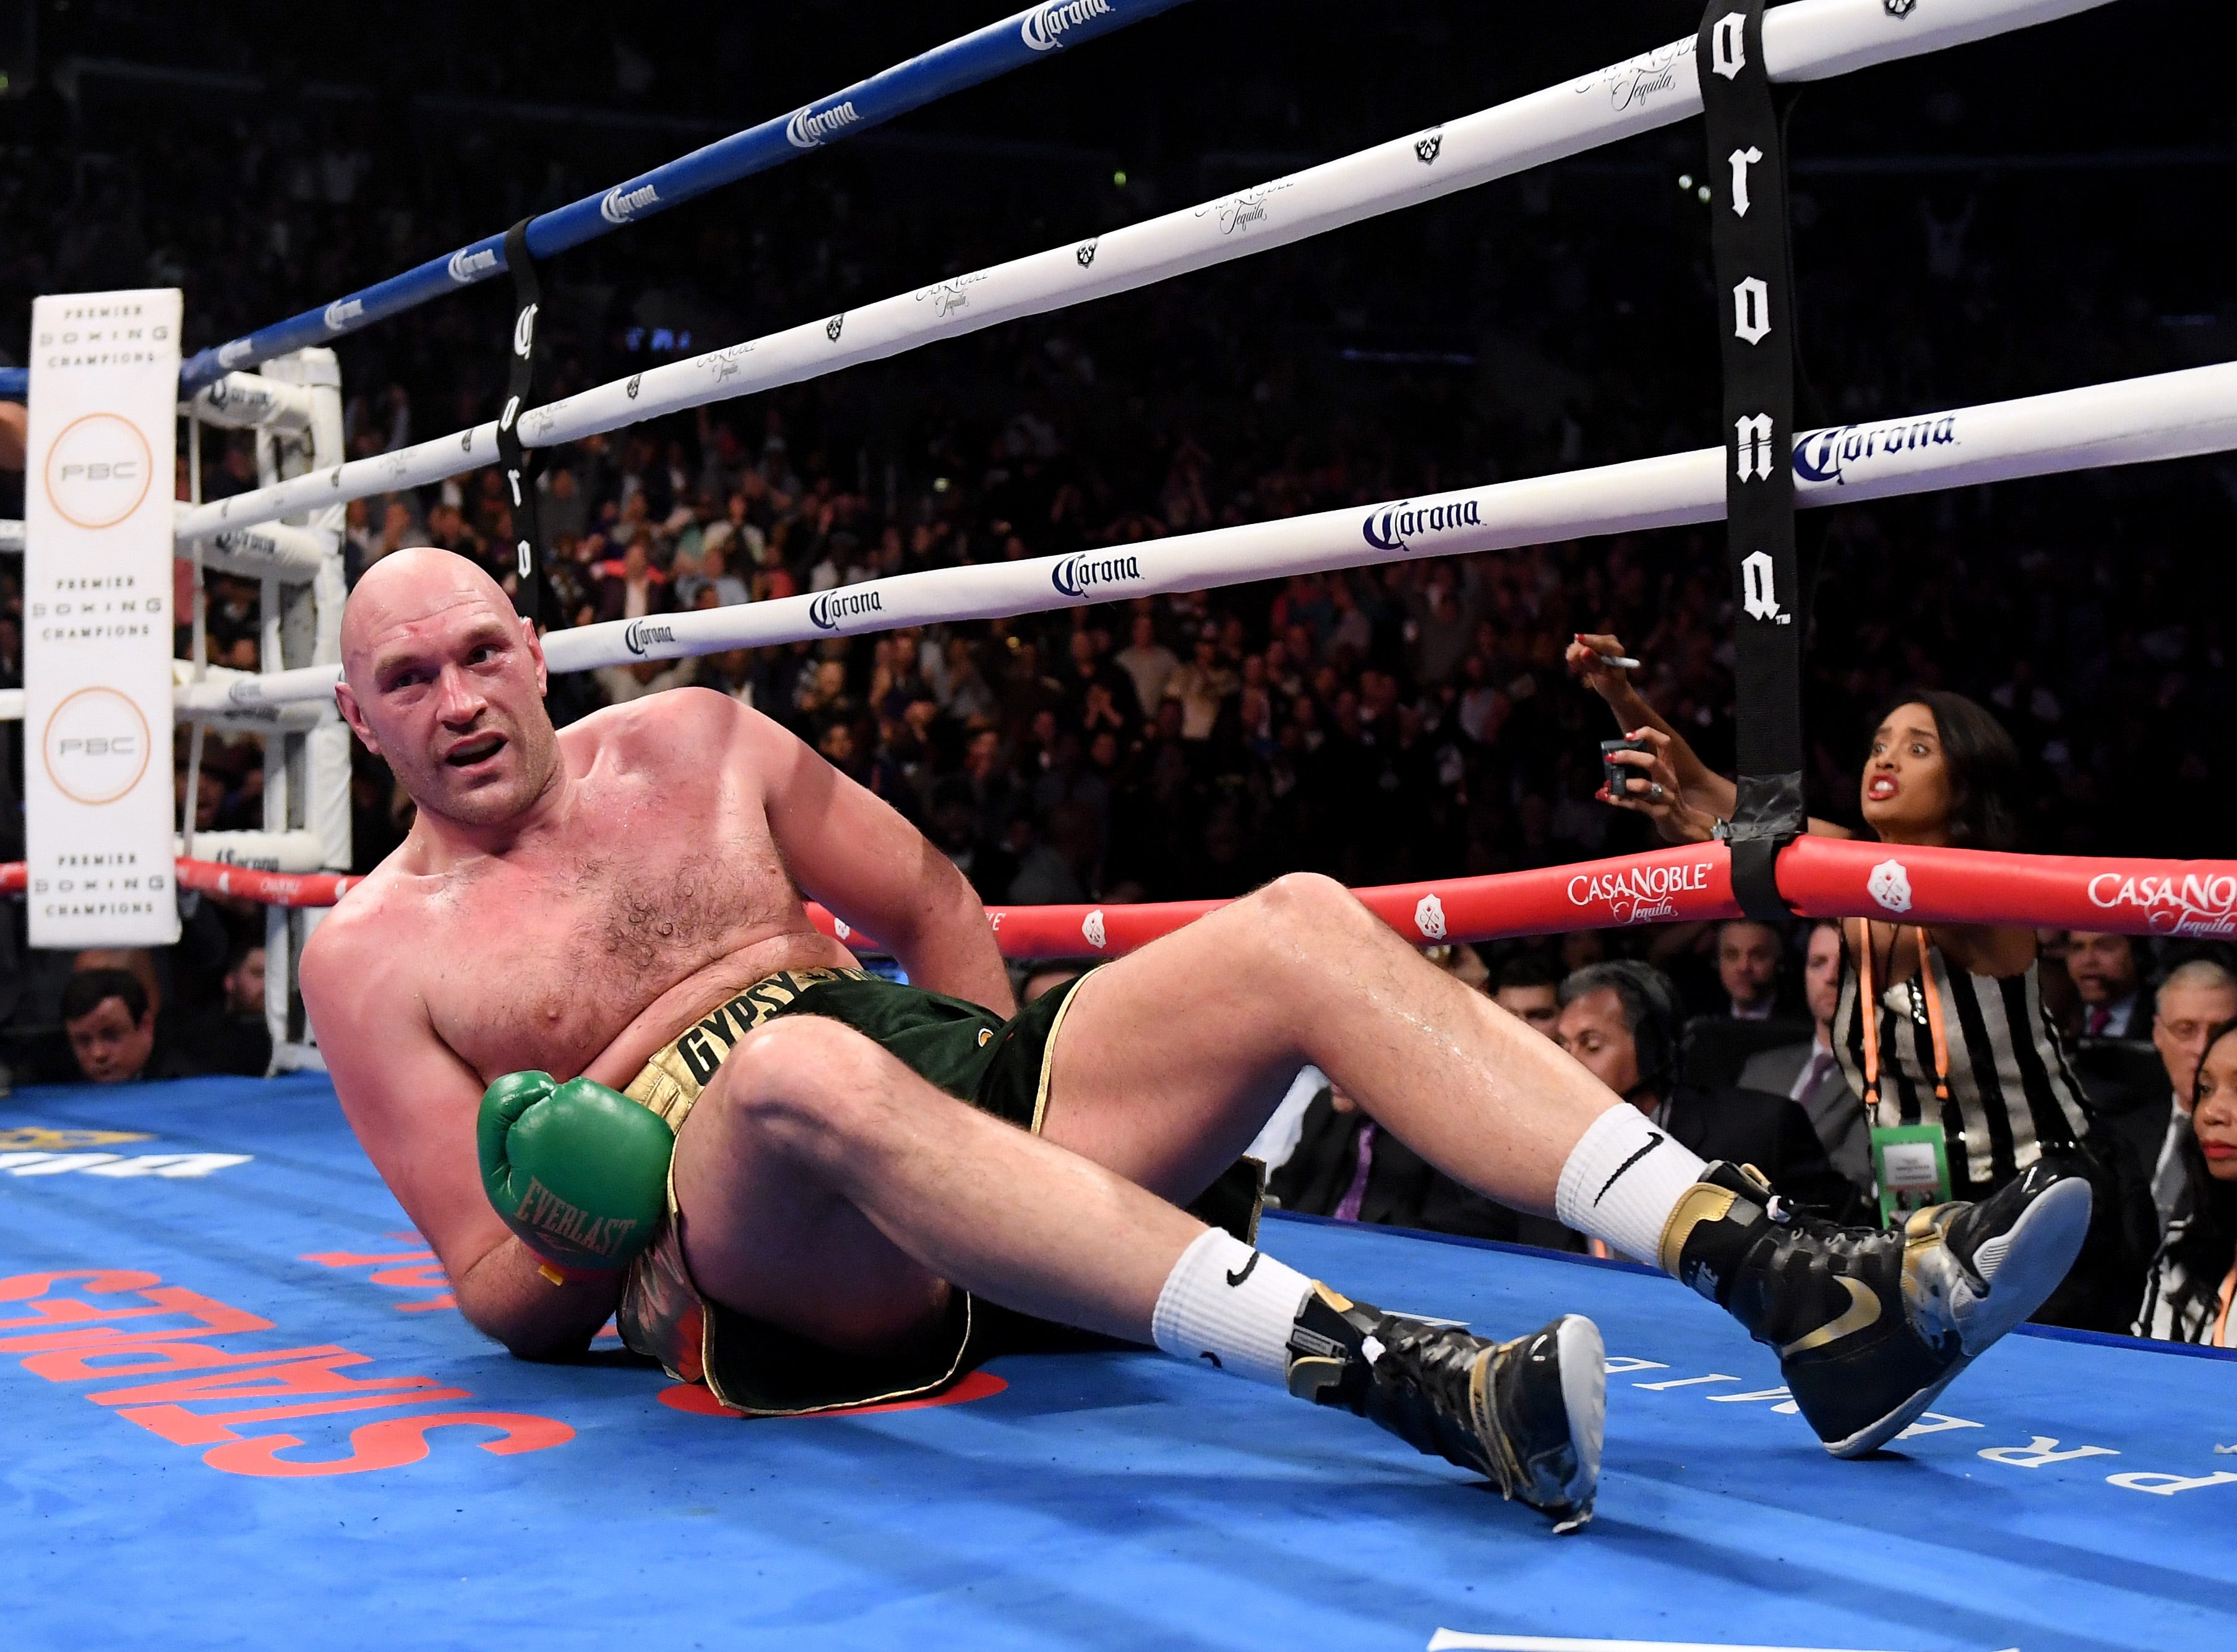 Tyson Fury reacts to getting knocked down during the ninth round of his heavyweight title fight with Deontay Wilder on Dec. 1 at Staples Center.